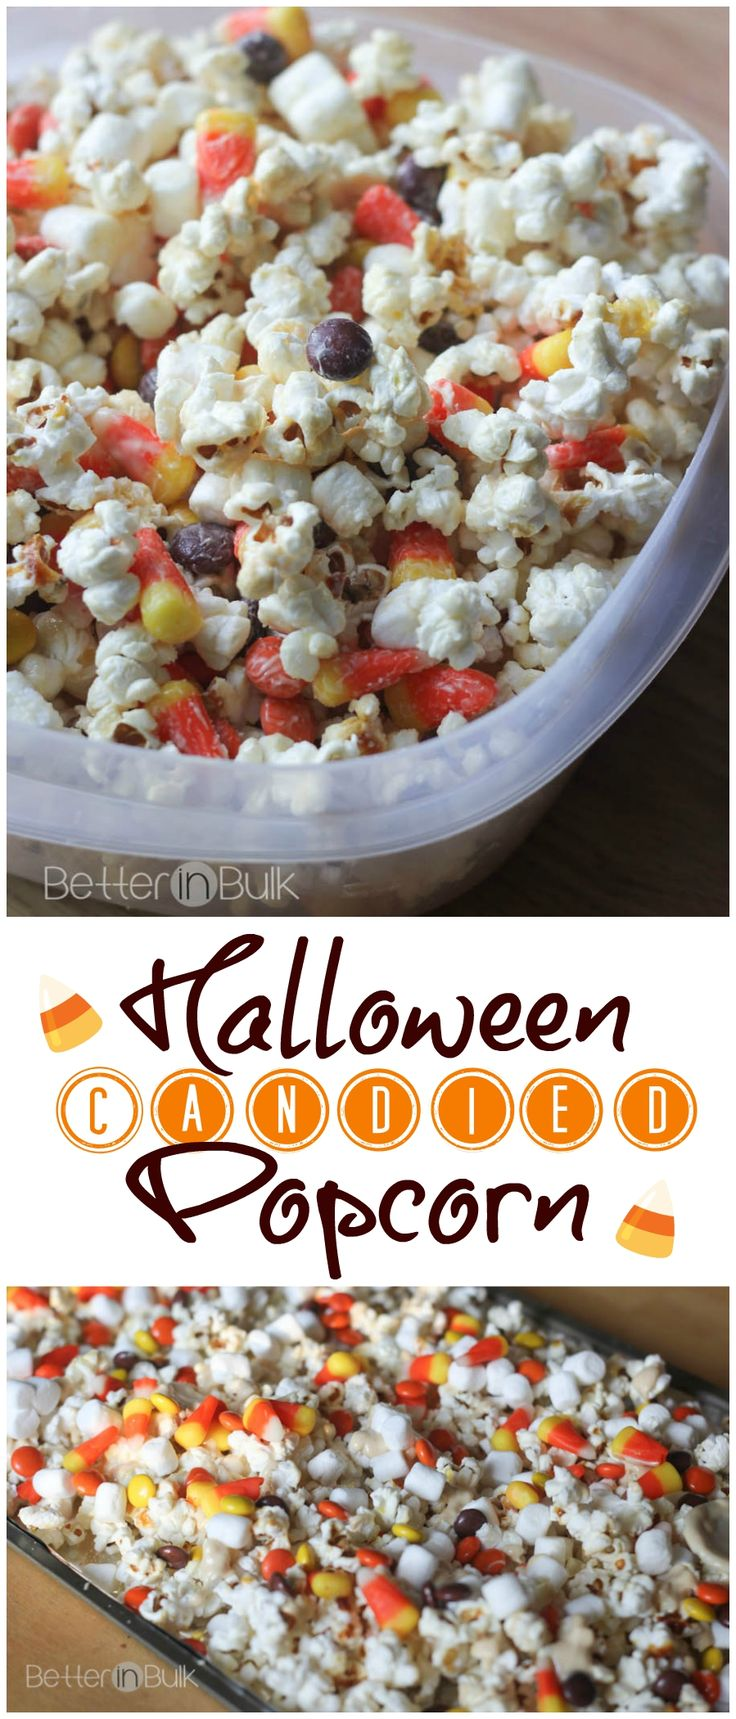 Halloween Candied Popcorn - this is a crowd-pleaser! Perfect for Halloween parties or just an afternoon snack in the fall. Yum!